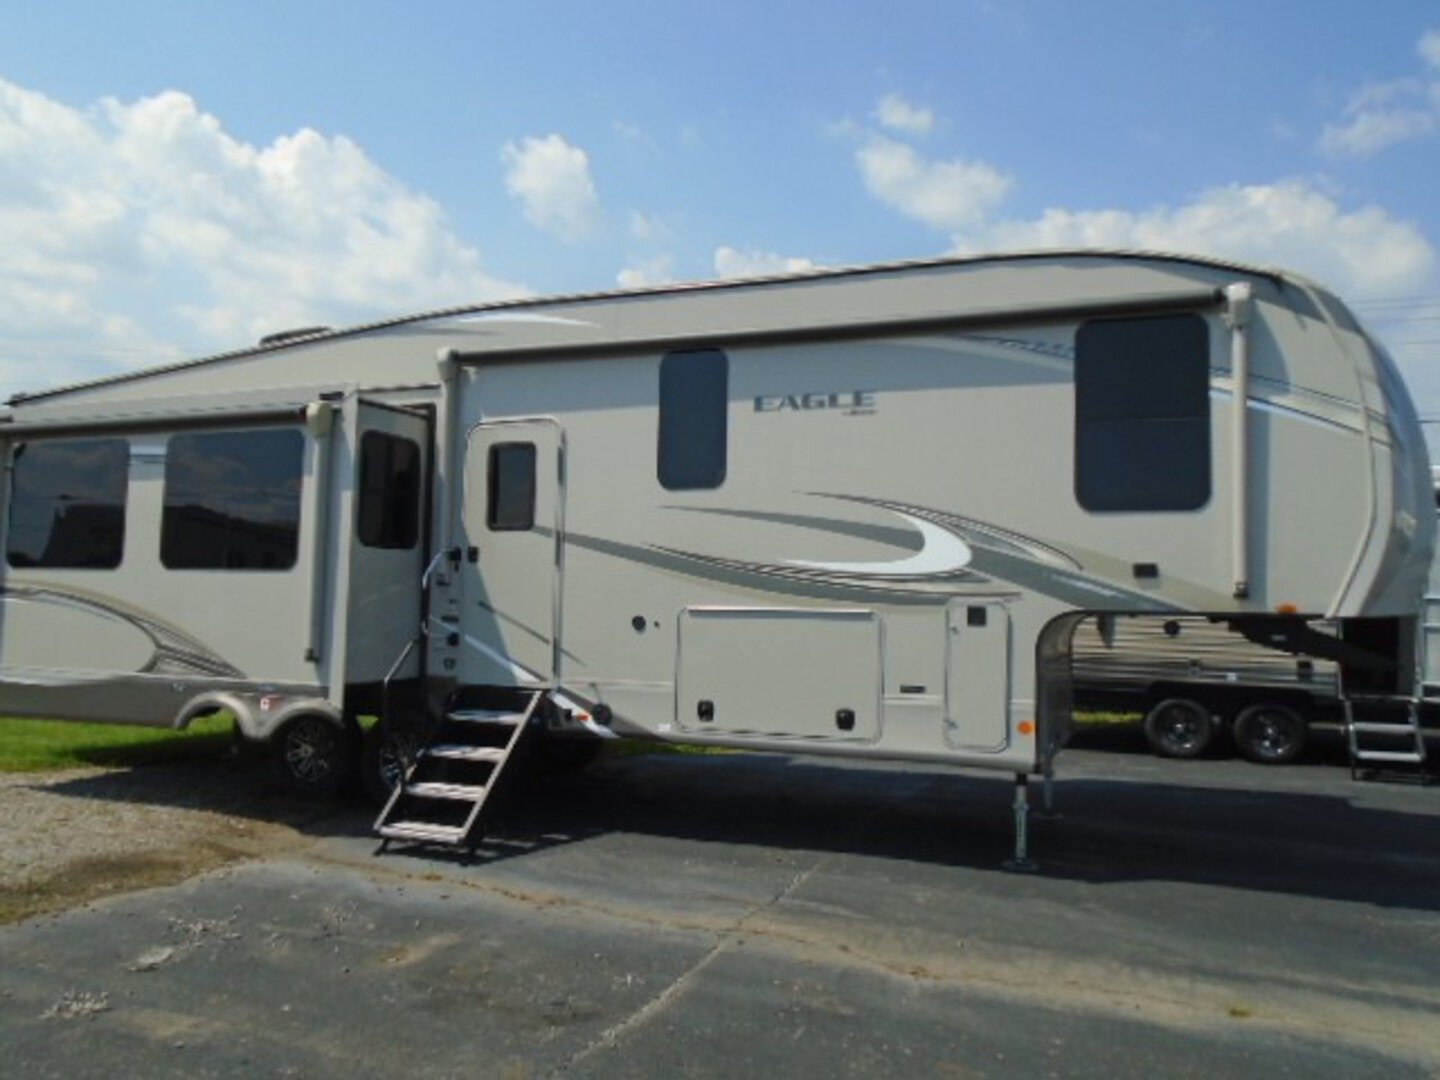 Used, 2020, Jayco, 321 RSTS, Fifth Wheels